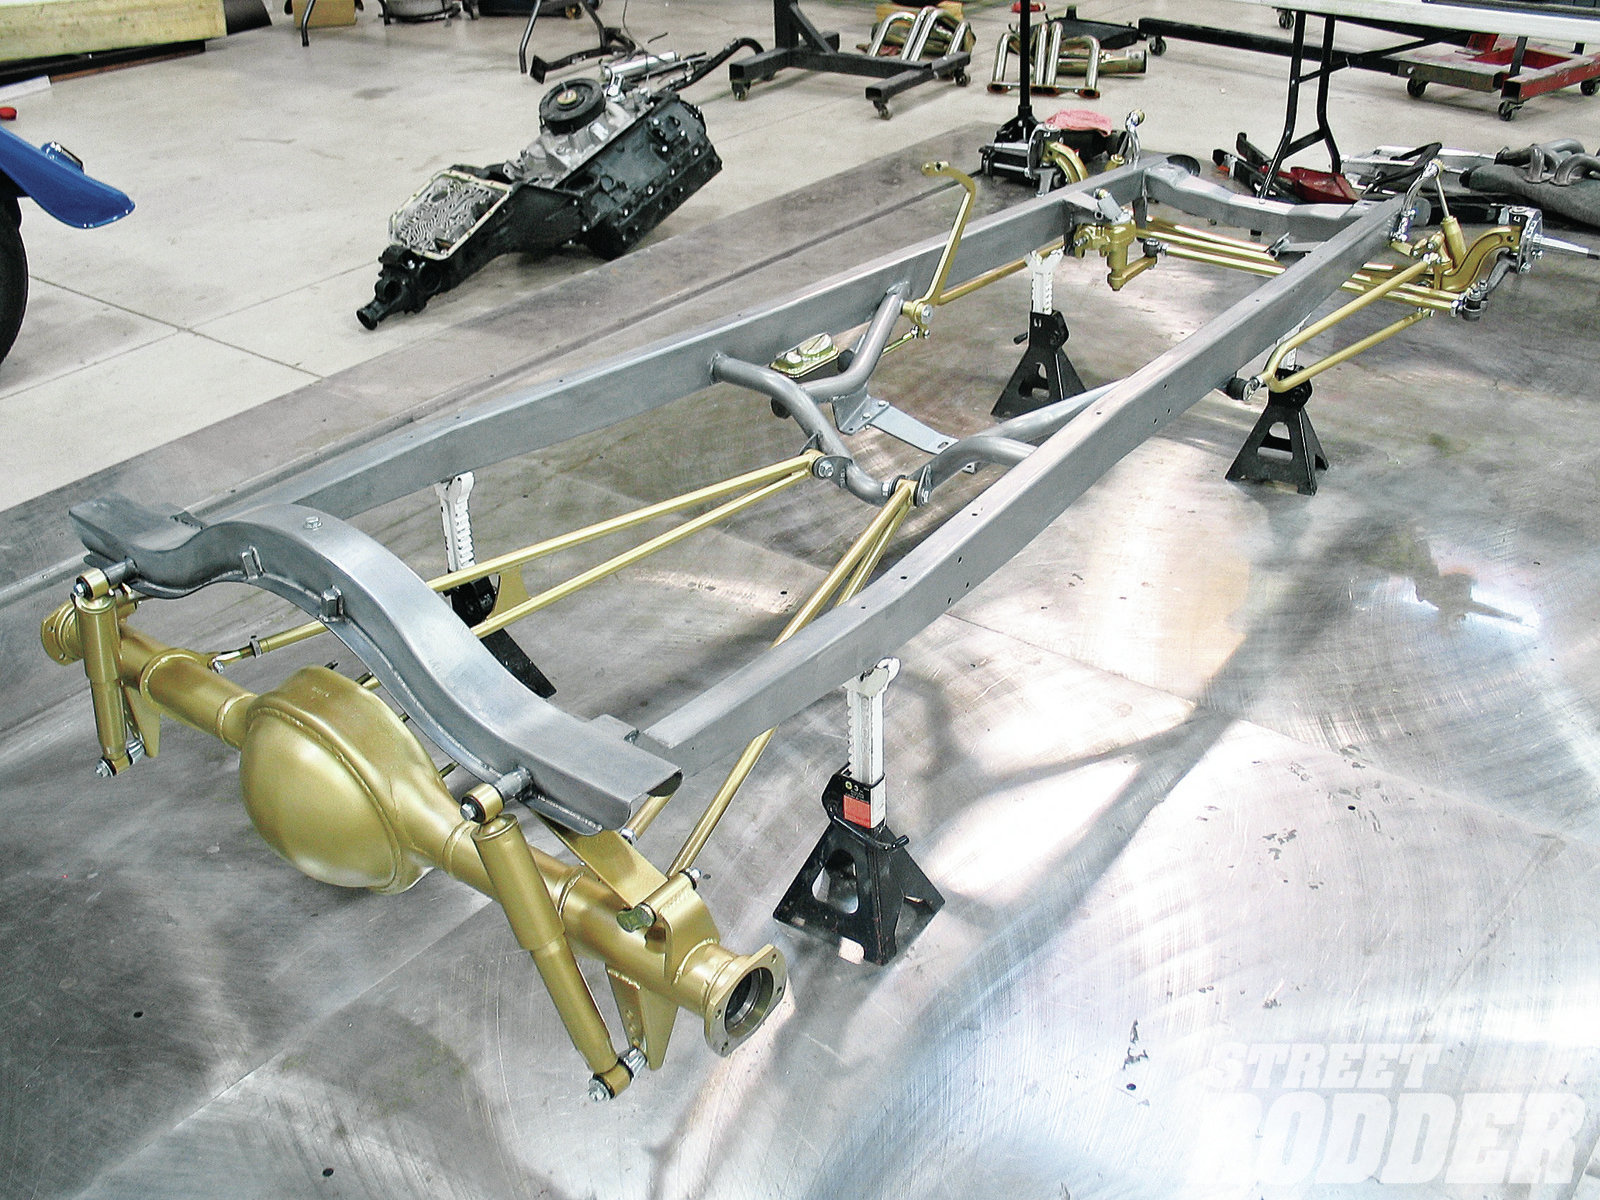 Suspension Bar Rear Suspensions And Truck Arms - Hot Rod Network